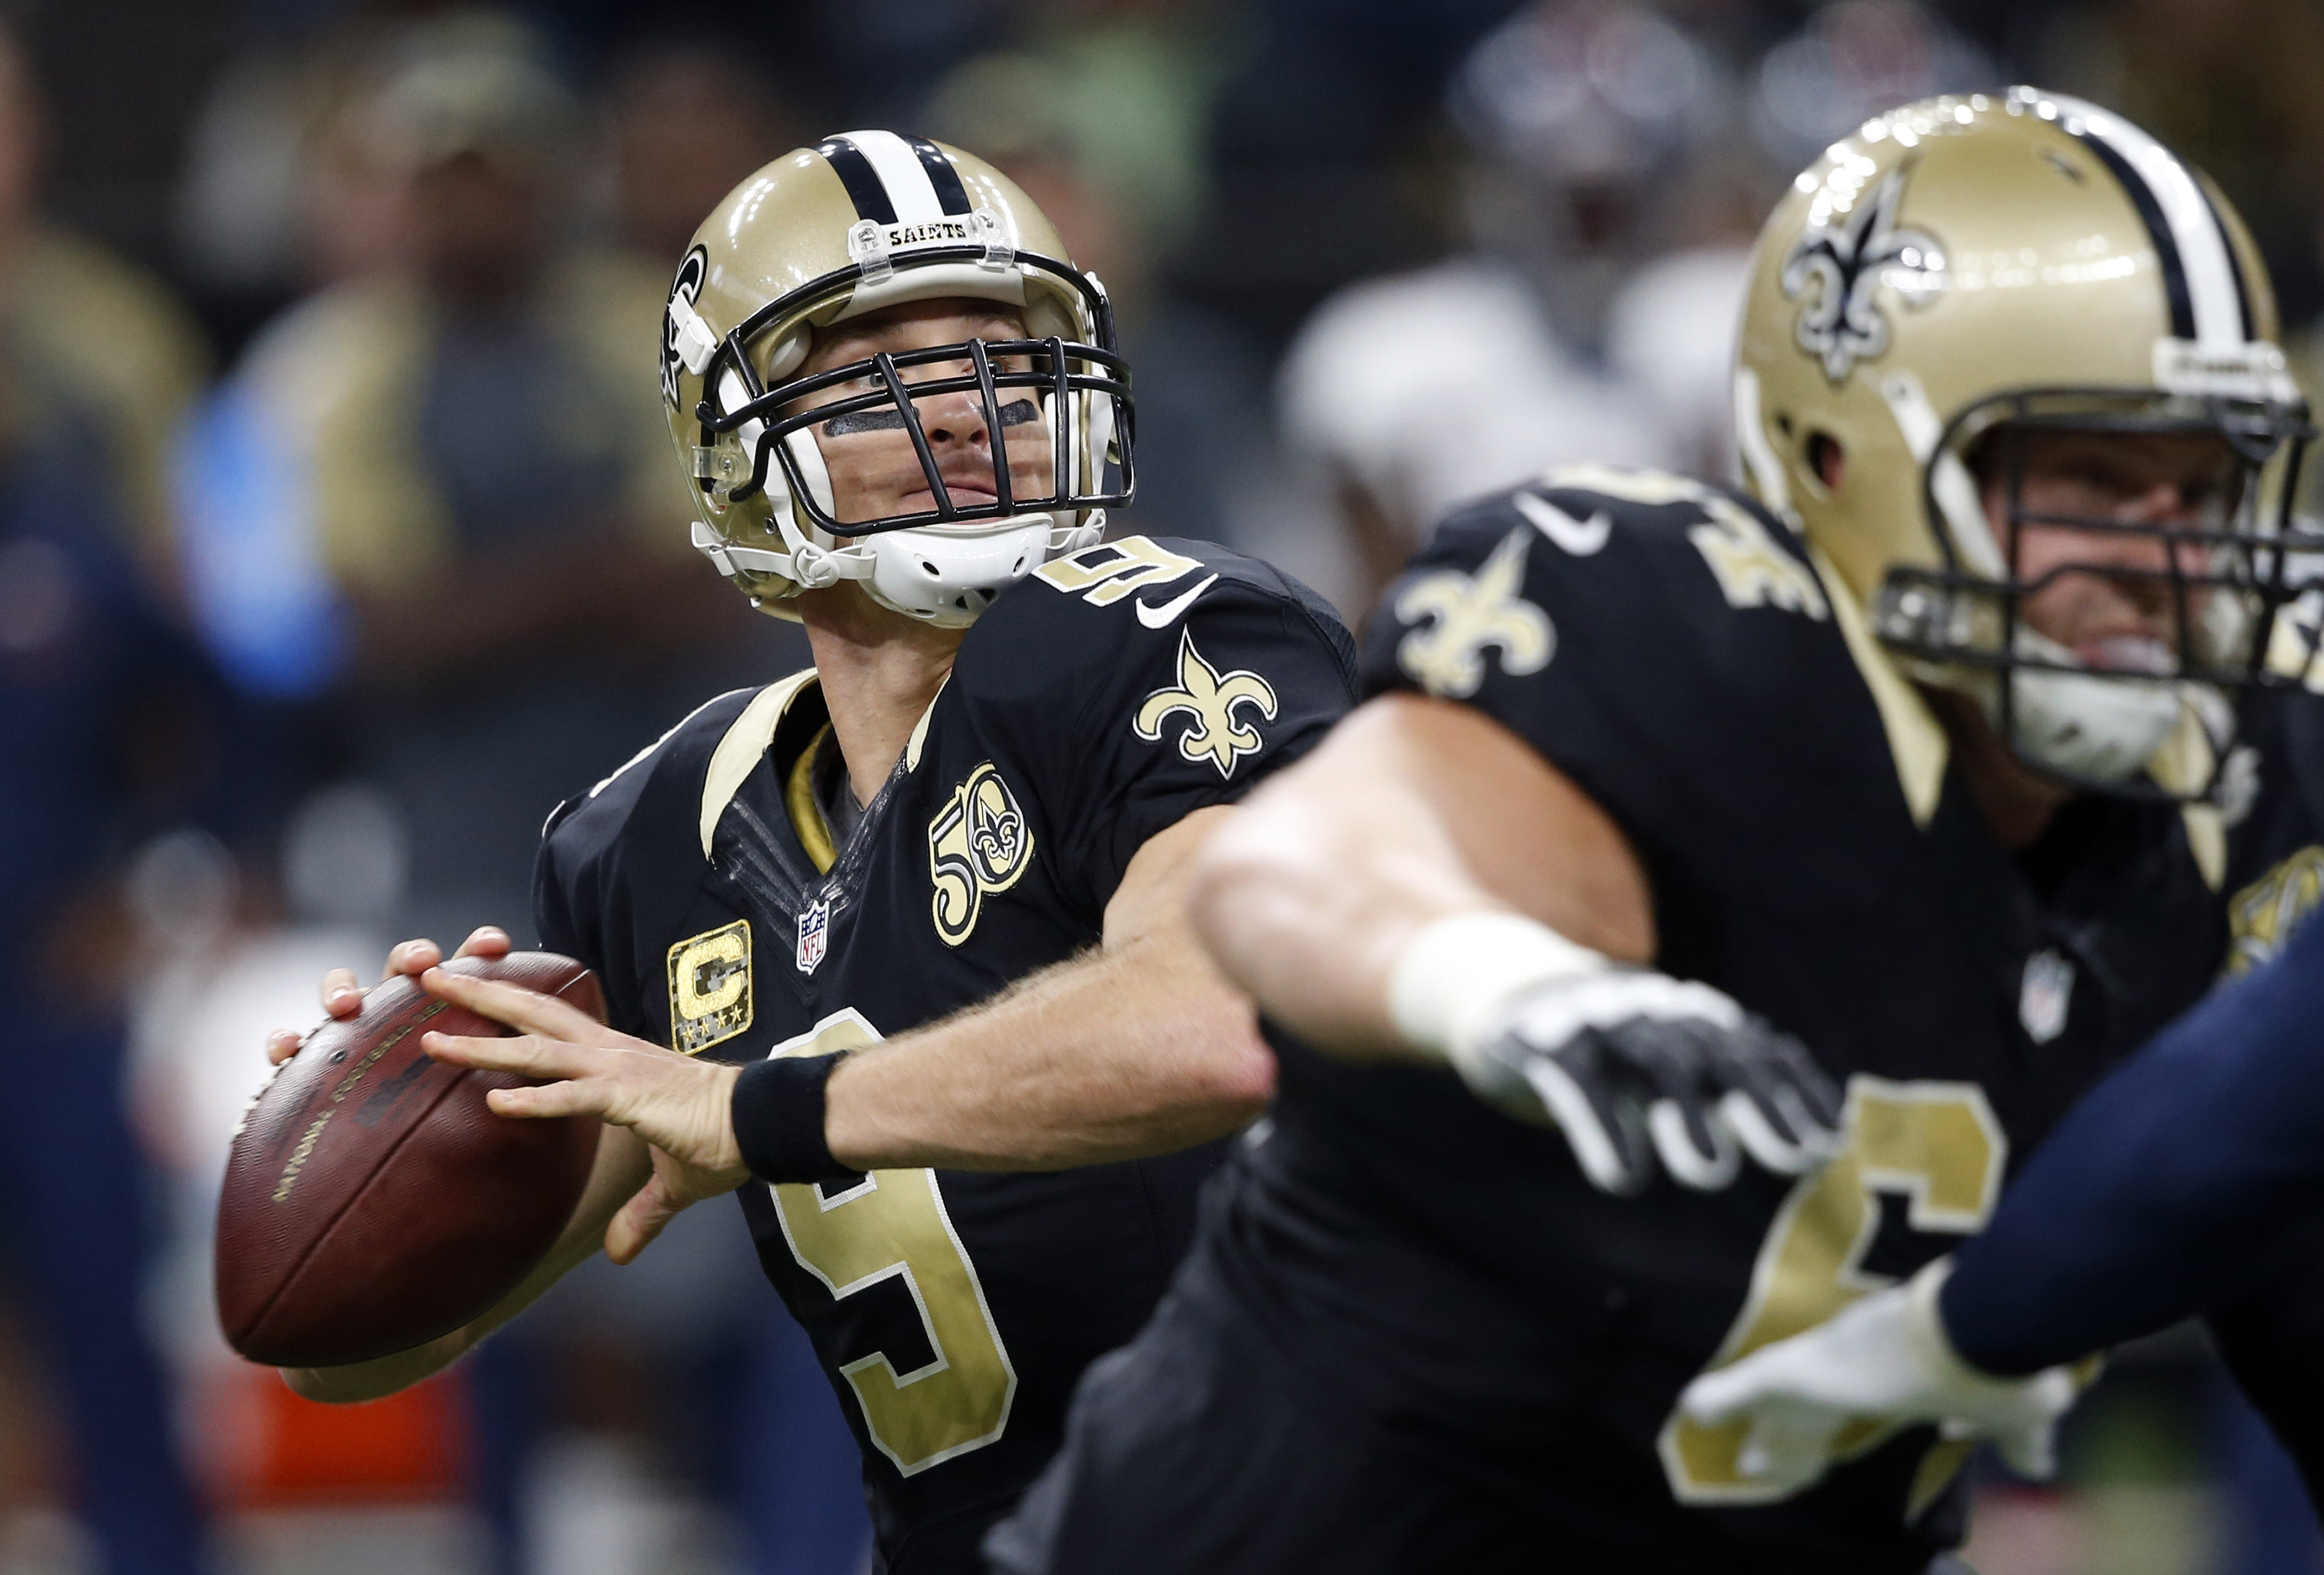 FILE - In this Sunday, Nov. 13, 2016 file photo New Orleans Saints quarterback Drew Brees (9) drops back to pass in the first half of an NFL football game against the Denver Broncos in New Orleans. The Saints play the Detroit Lions on Sunday, Dec. 4, 2016